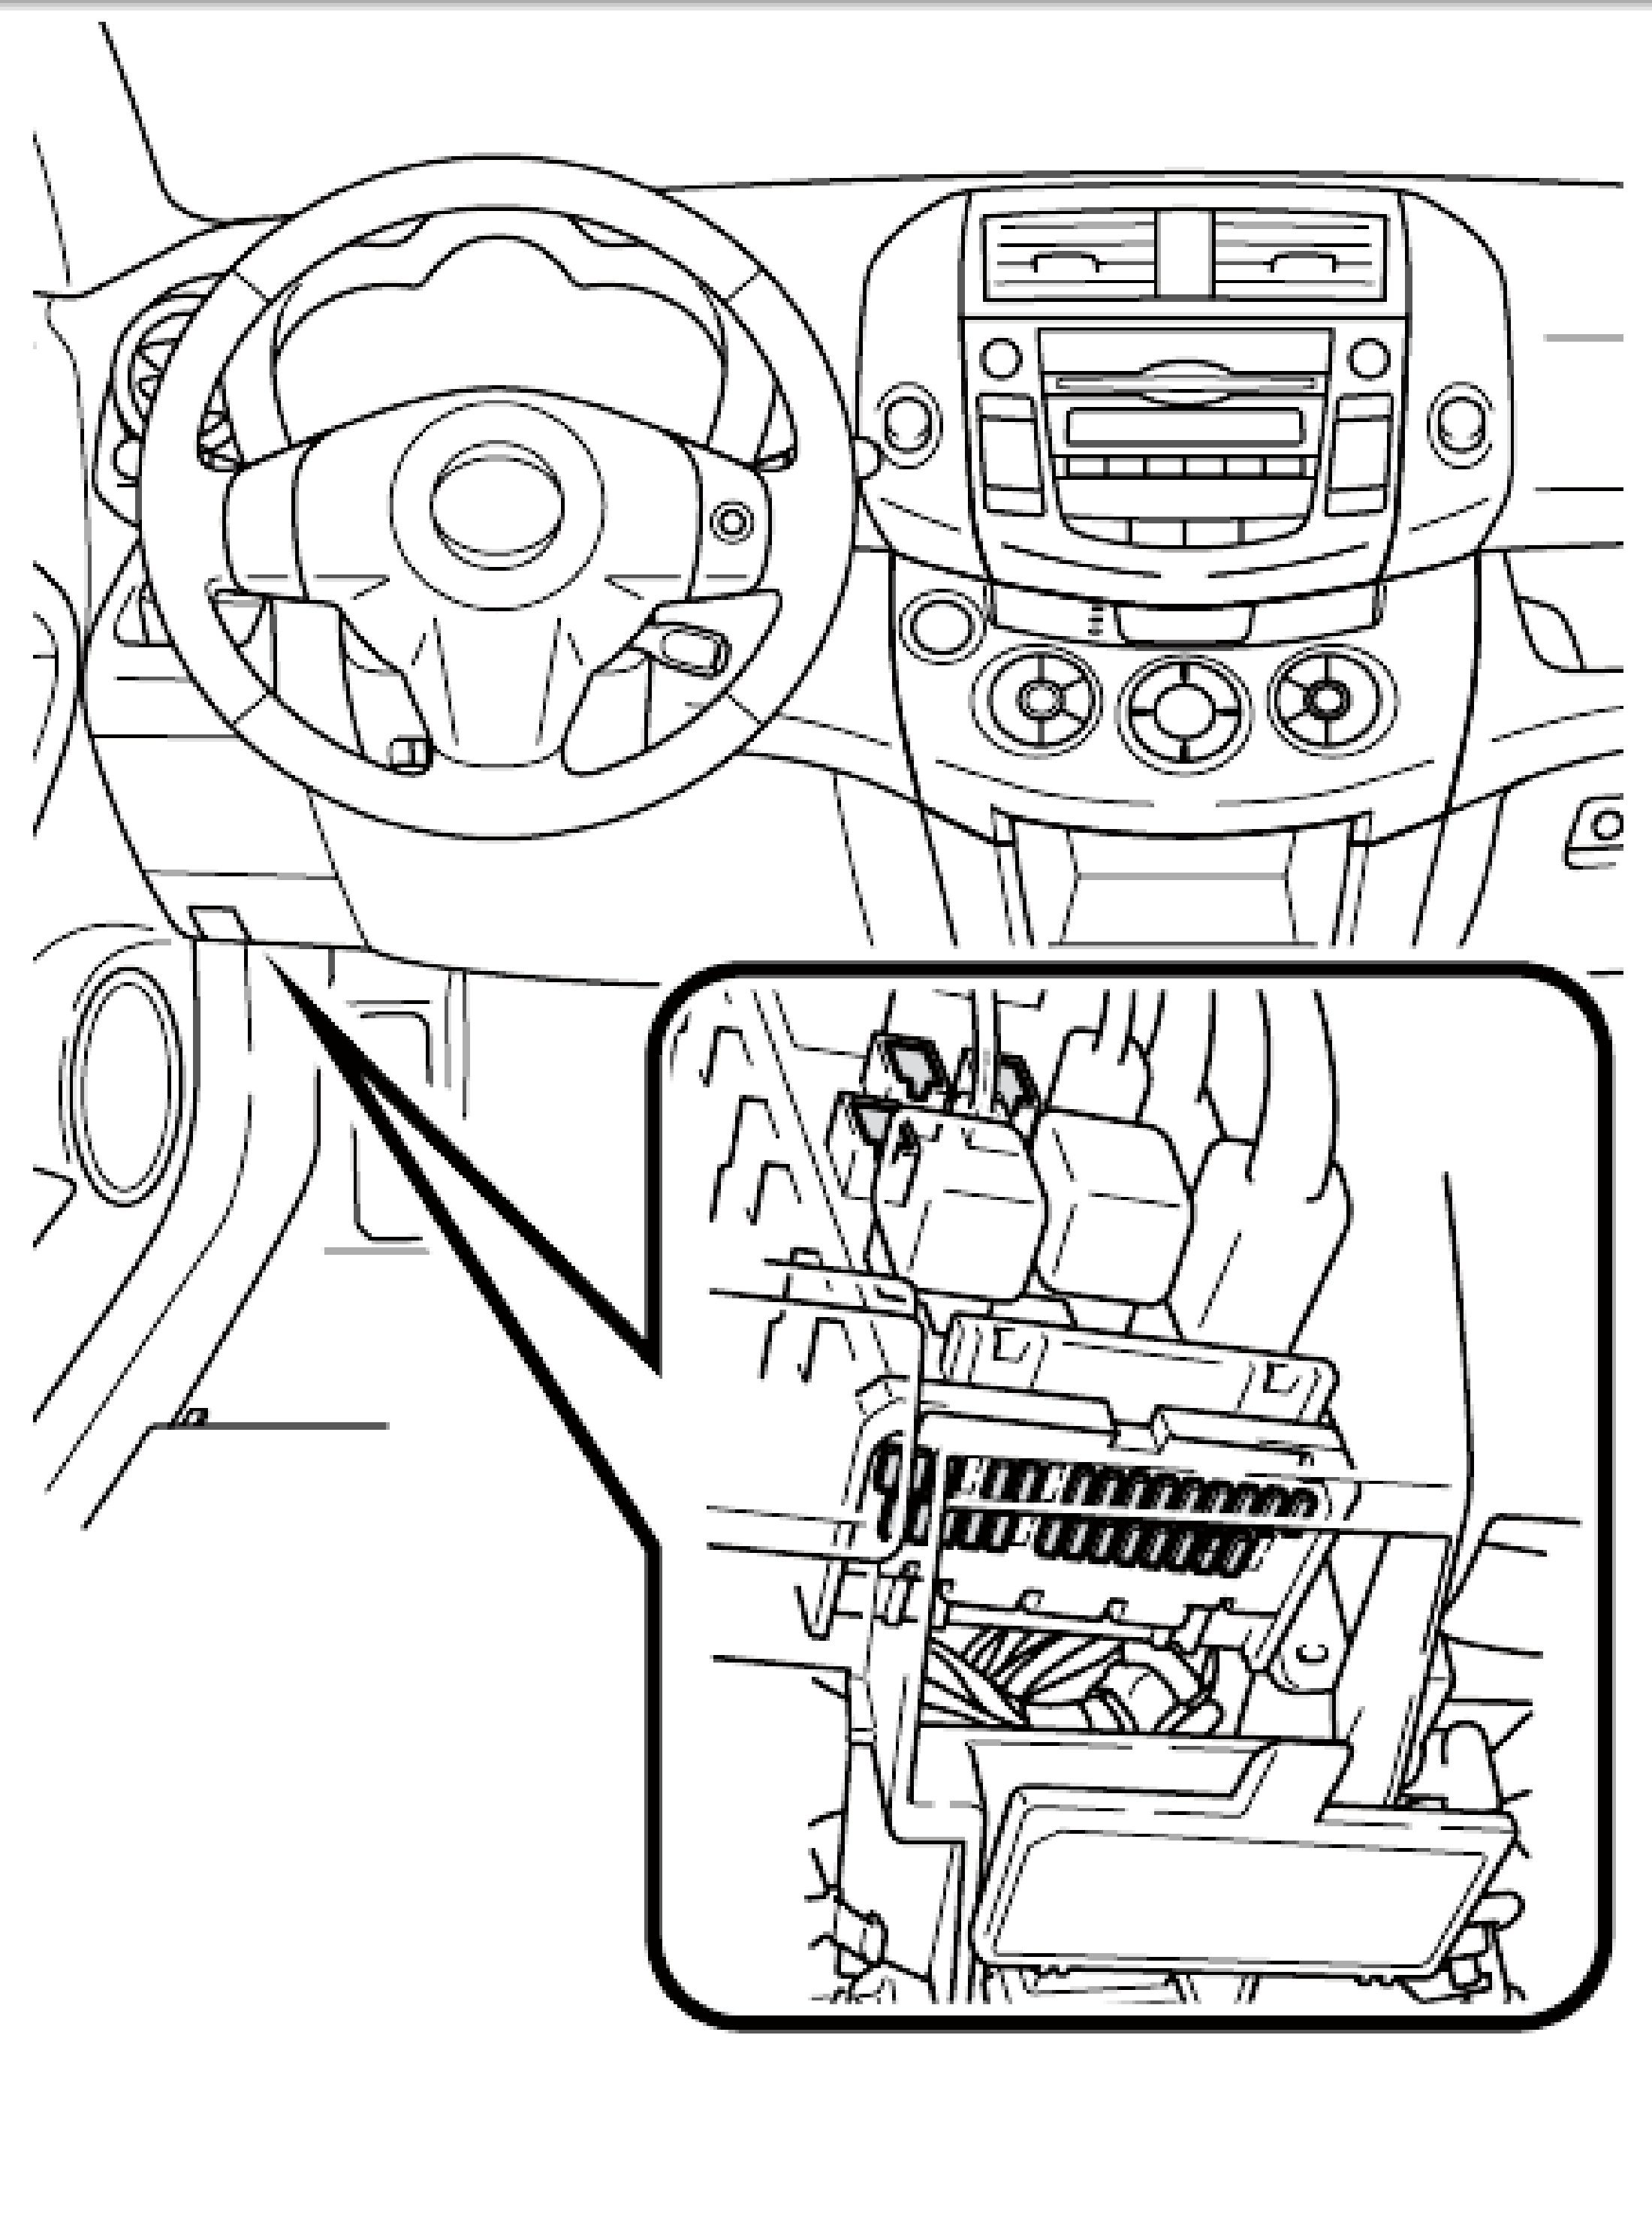 2001 toyota avalon fuse box   27 wiring diagram images